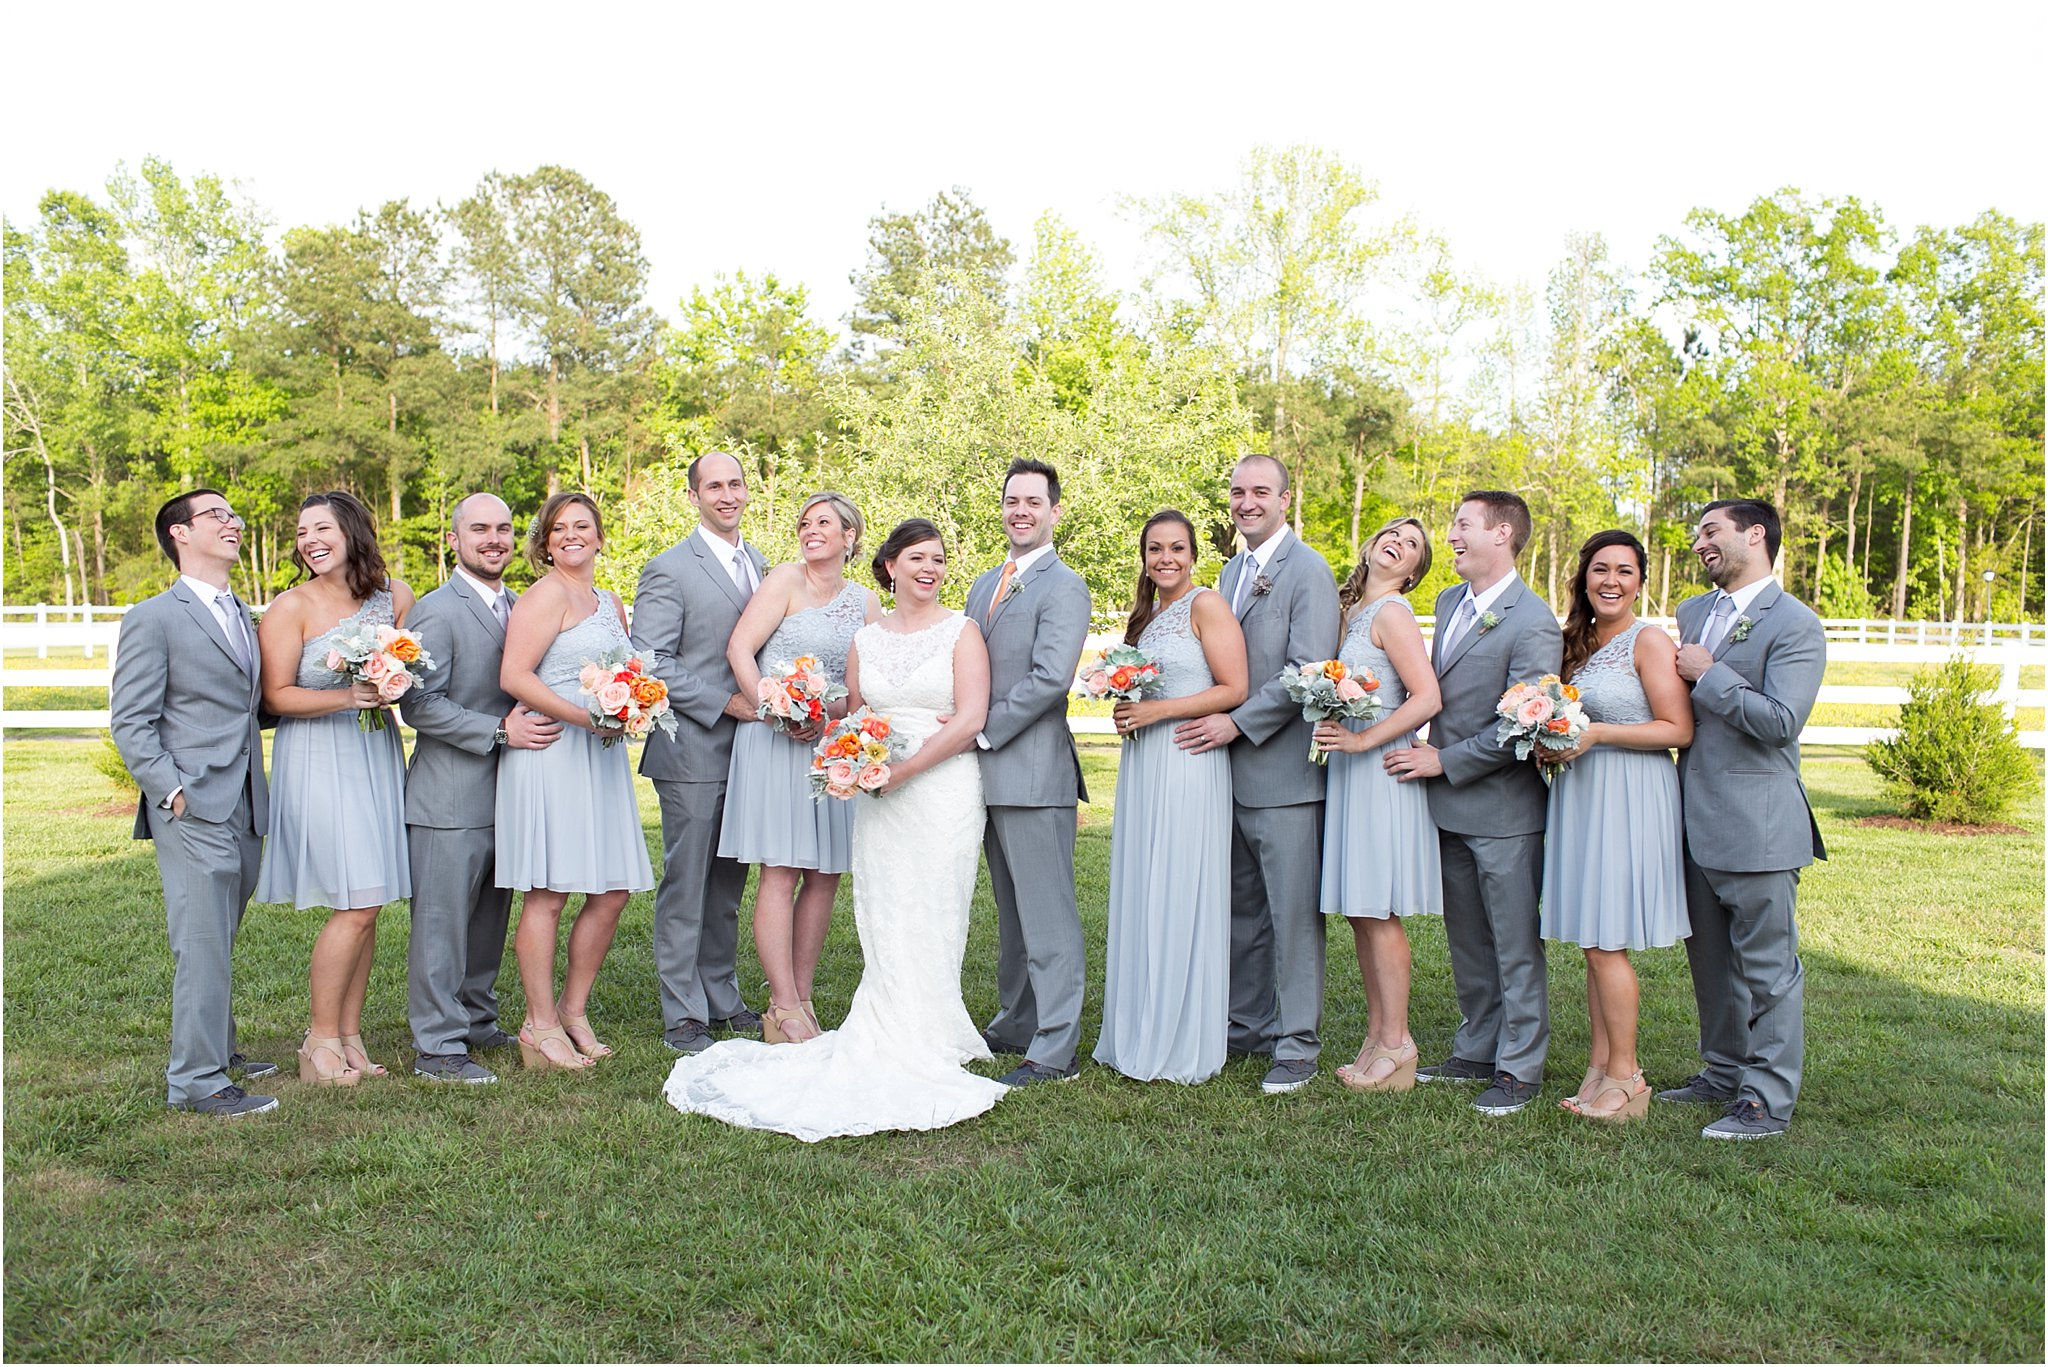 jessica_ryan_photography_holly_ridge_manor_wedding_roost_flowers_jamie_leigh_events_dhalia_edwards_candid_vibrant_wedding_colors_1307